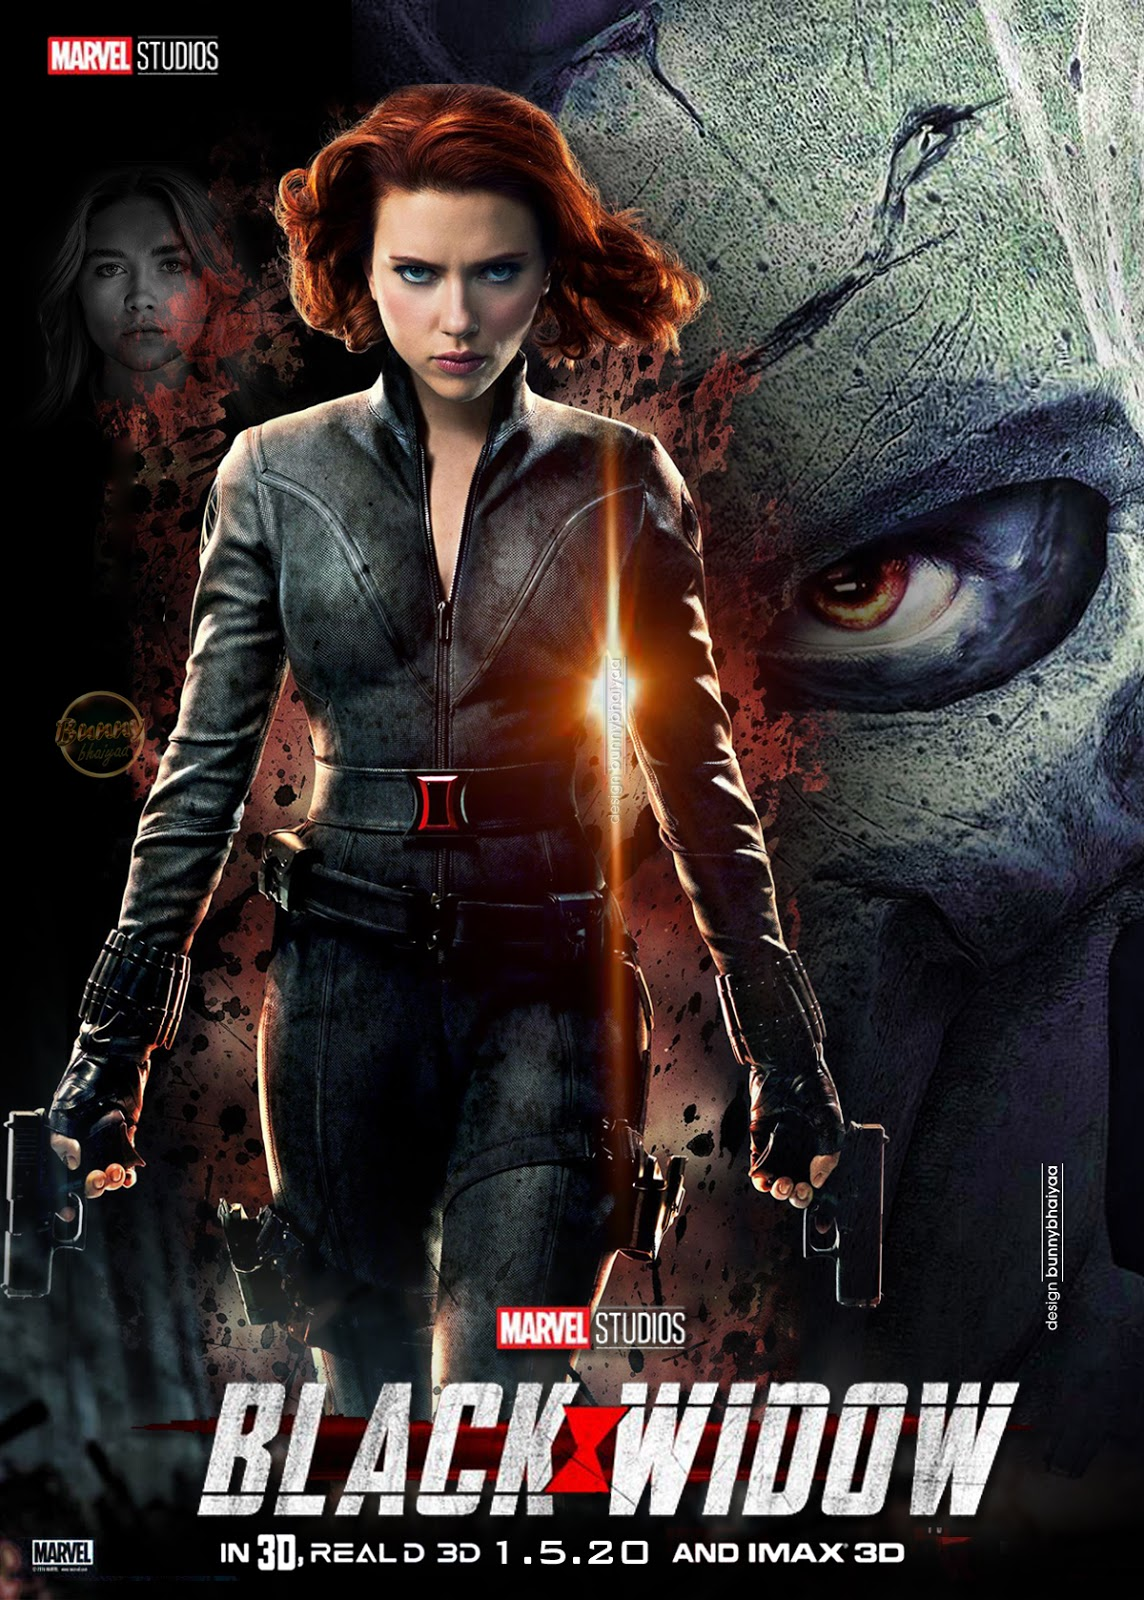 Hindidubbedsouthmoviesposters Black Widow Hd Poster